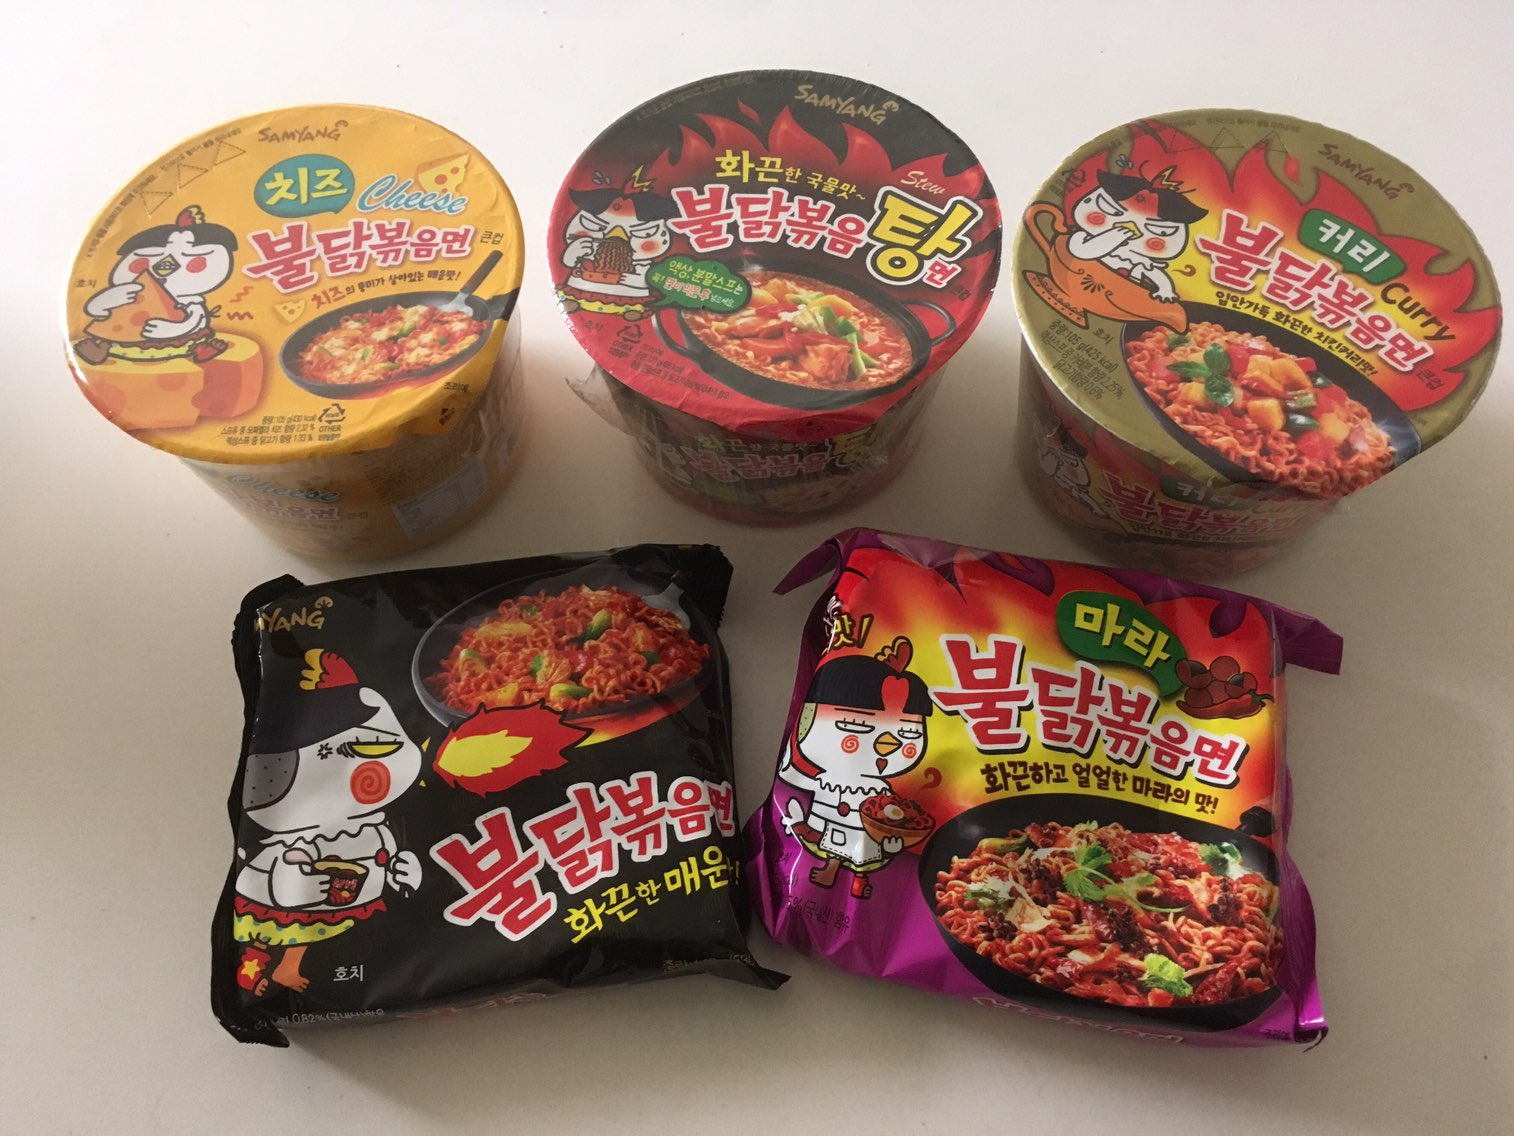 Updated We Tried All 6 Fire Noodle Flavors And Heres Our Ranking Samyang Nuclear 2x Spicy The Korea Daily